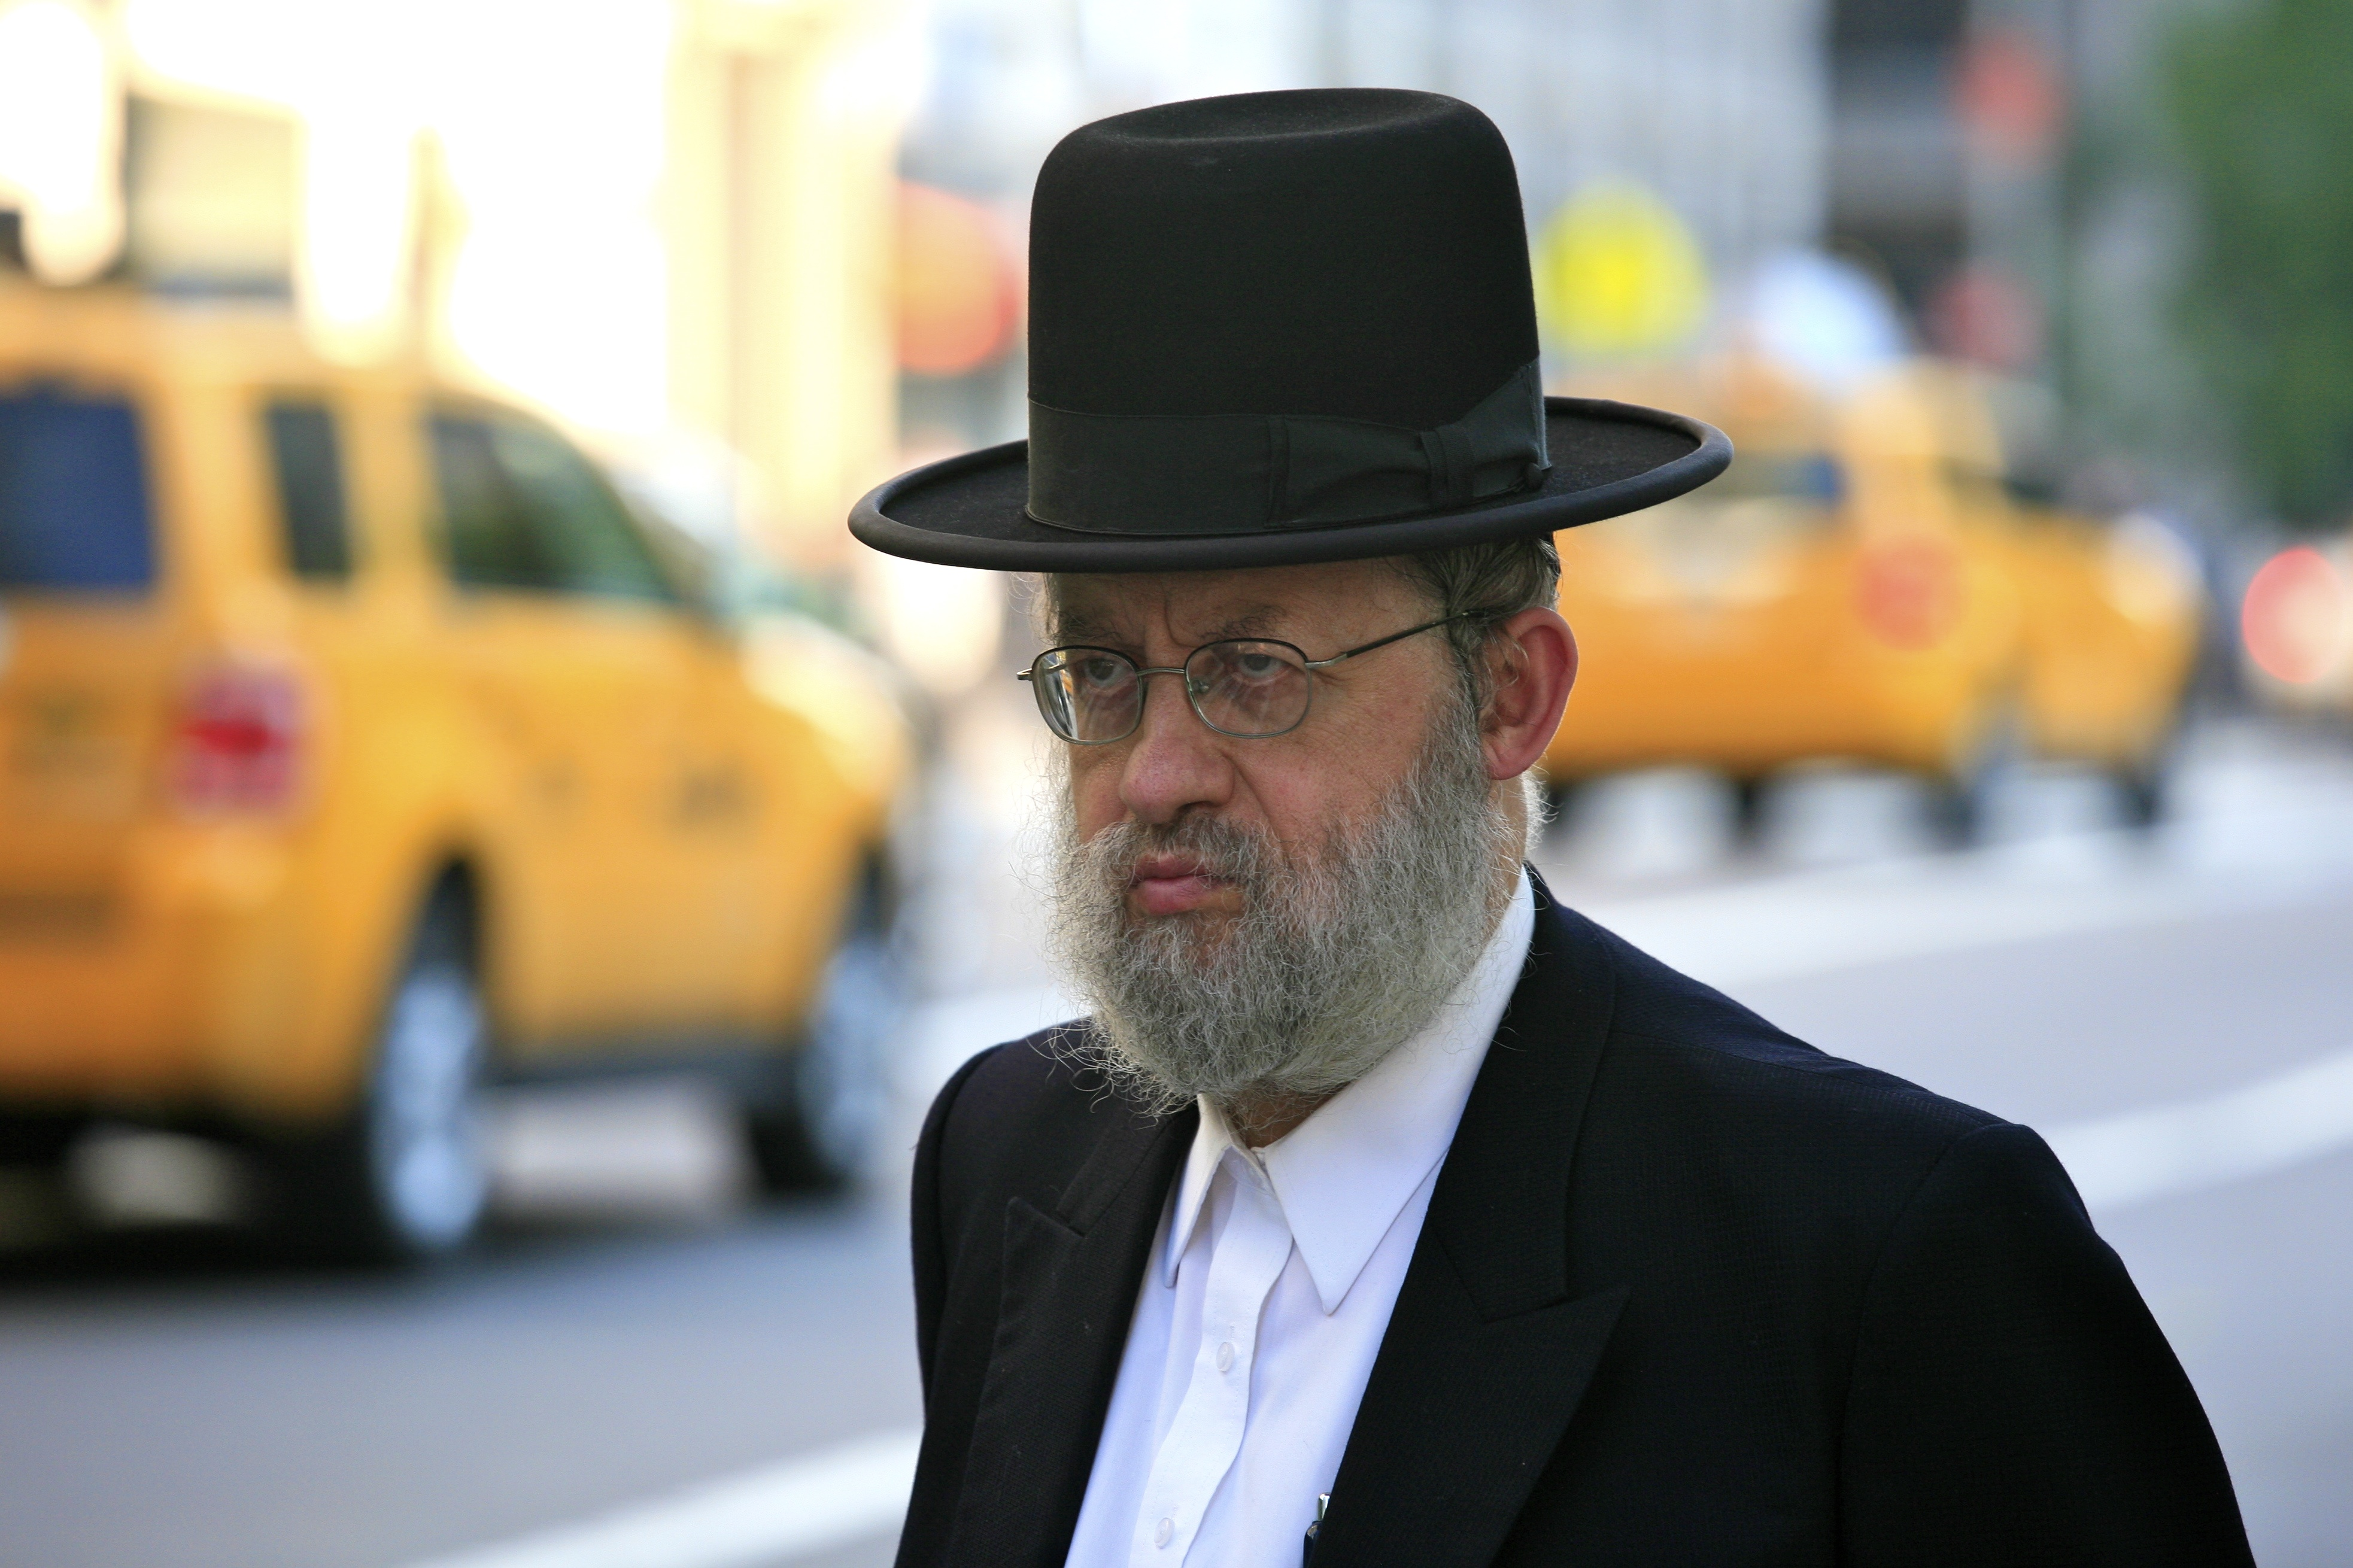 orthodox judaism Orthodox judaism is the branch of judaism that has the strictest adherence to traditional jewish practices and beliefs it originated in response to the innovations in jewish practice introduced.